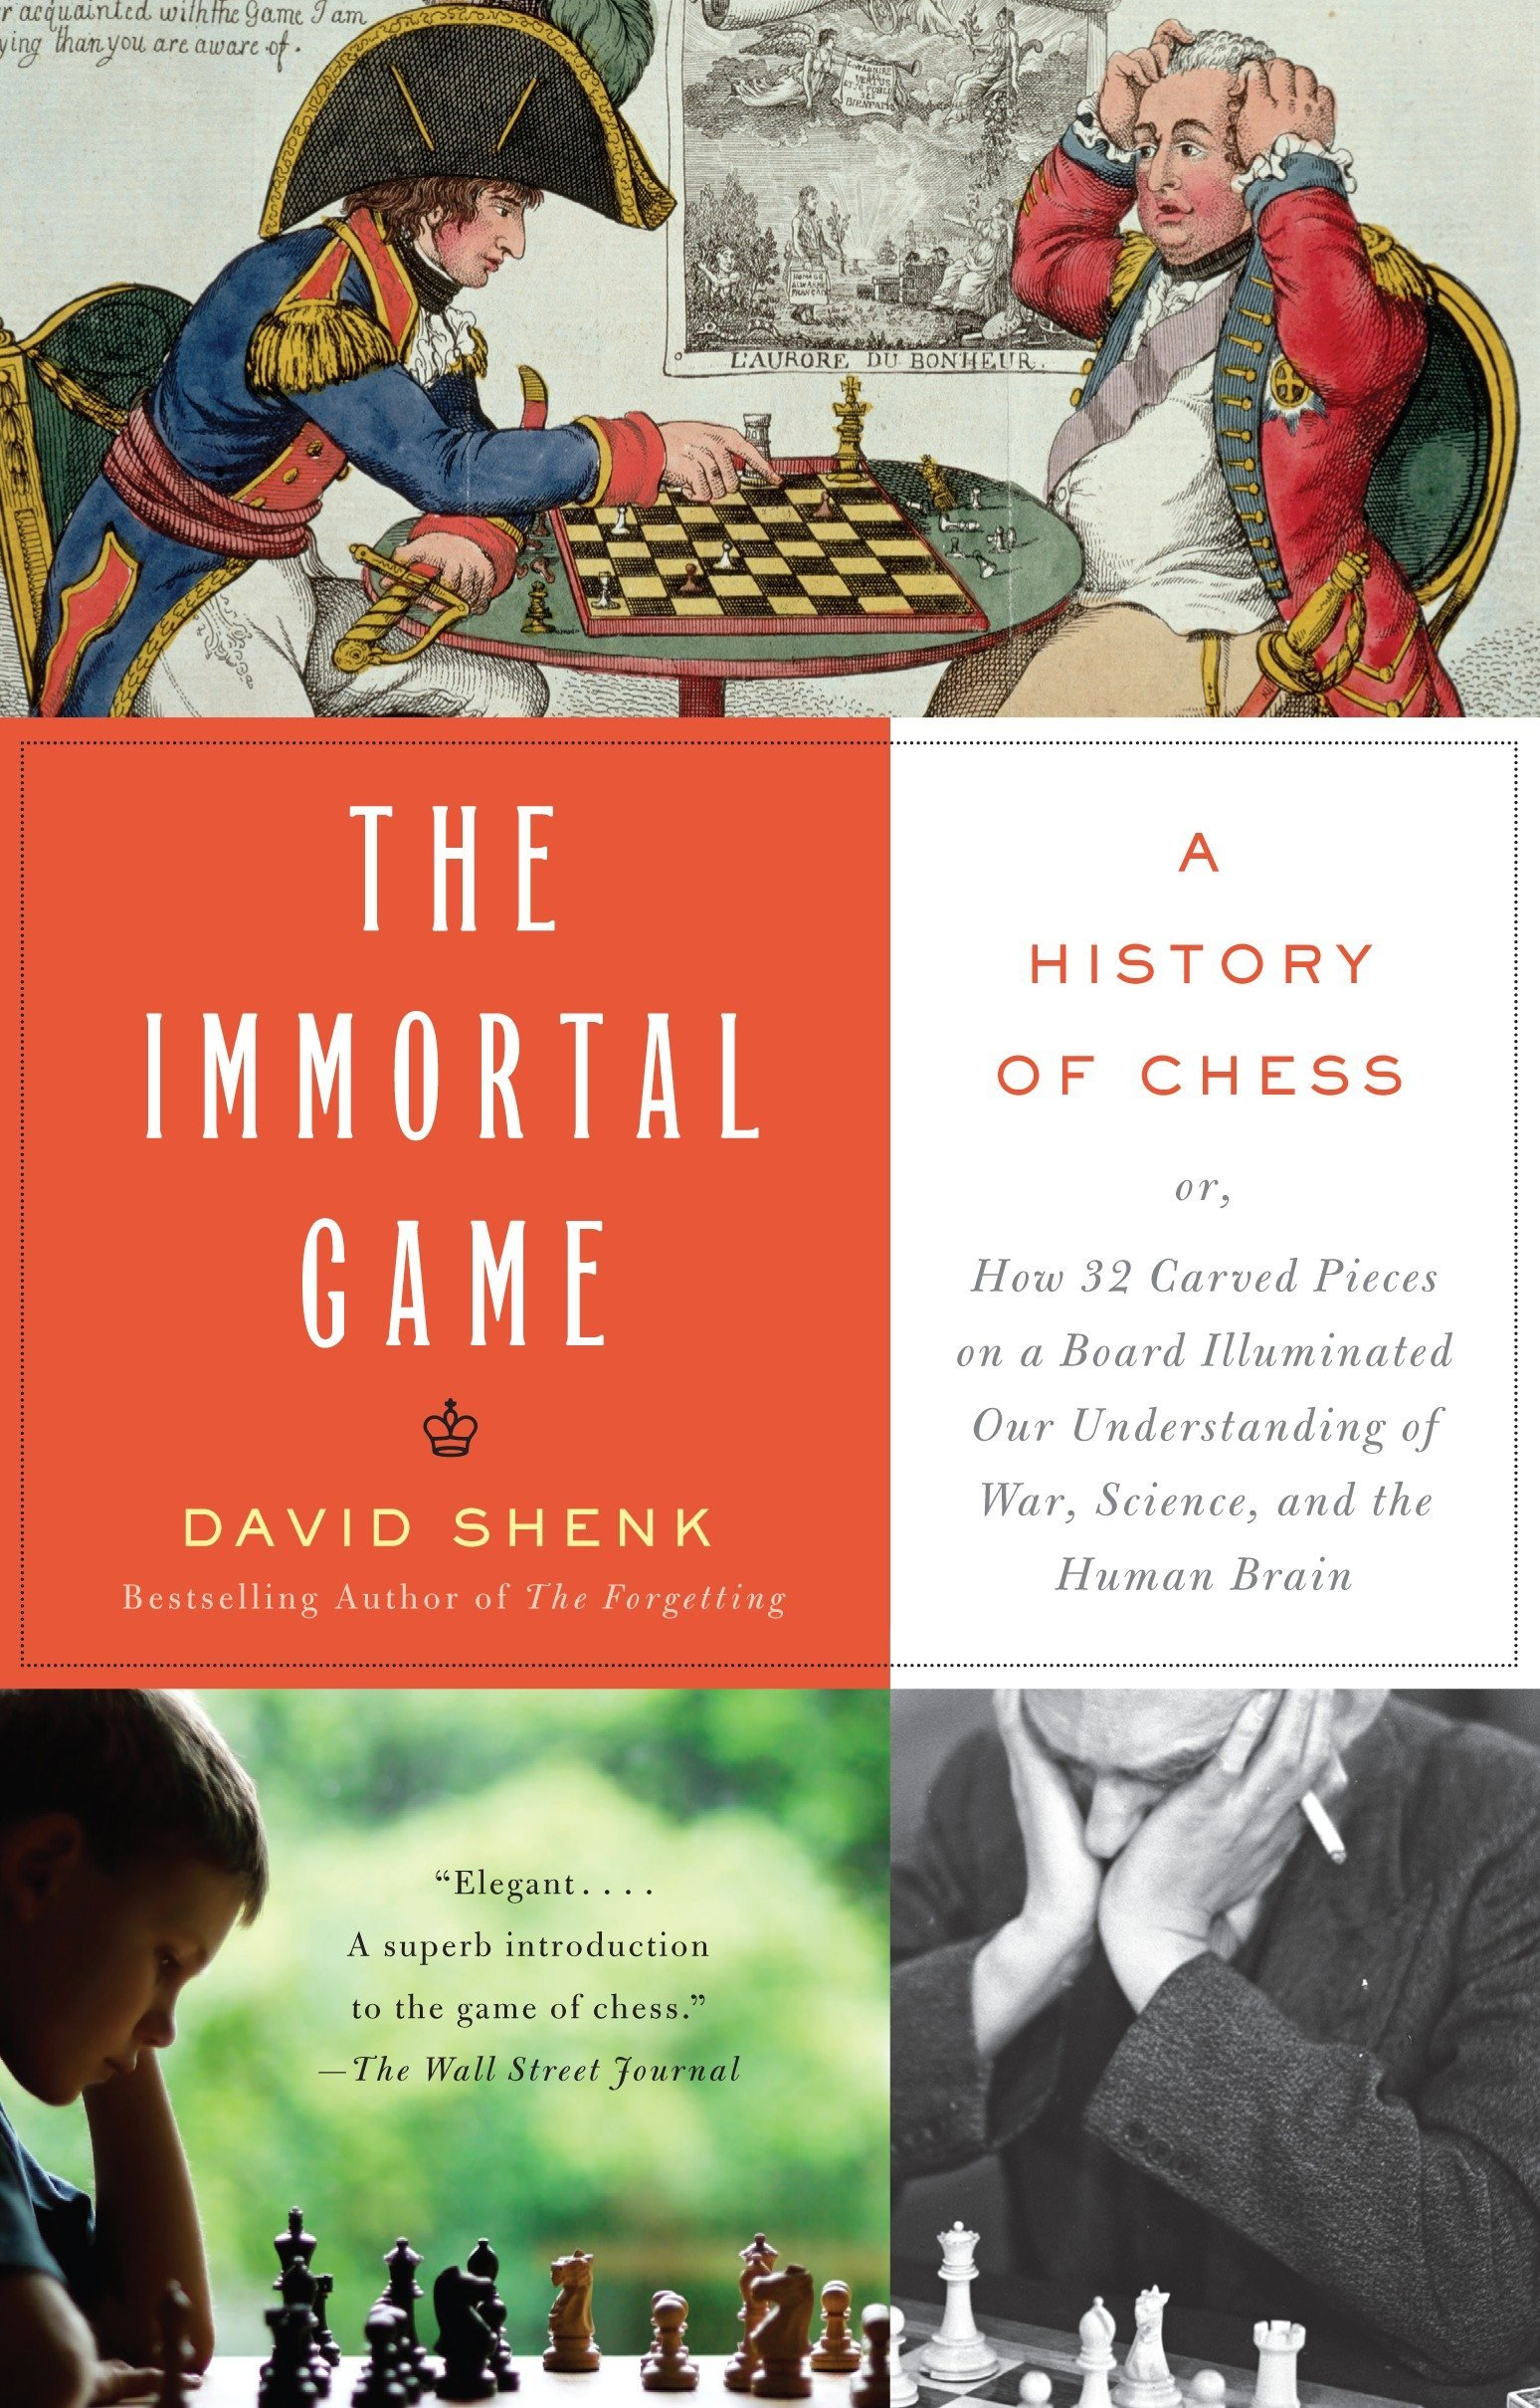 The Immortal Game: A History of Chess Paperback – October 2, 2007 David Shenk Anchor 1400034086 GAM001030